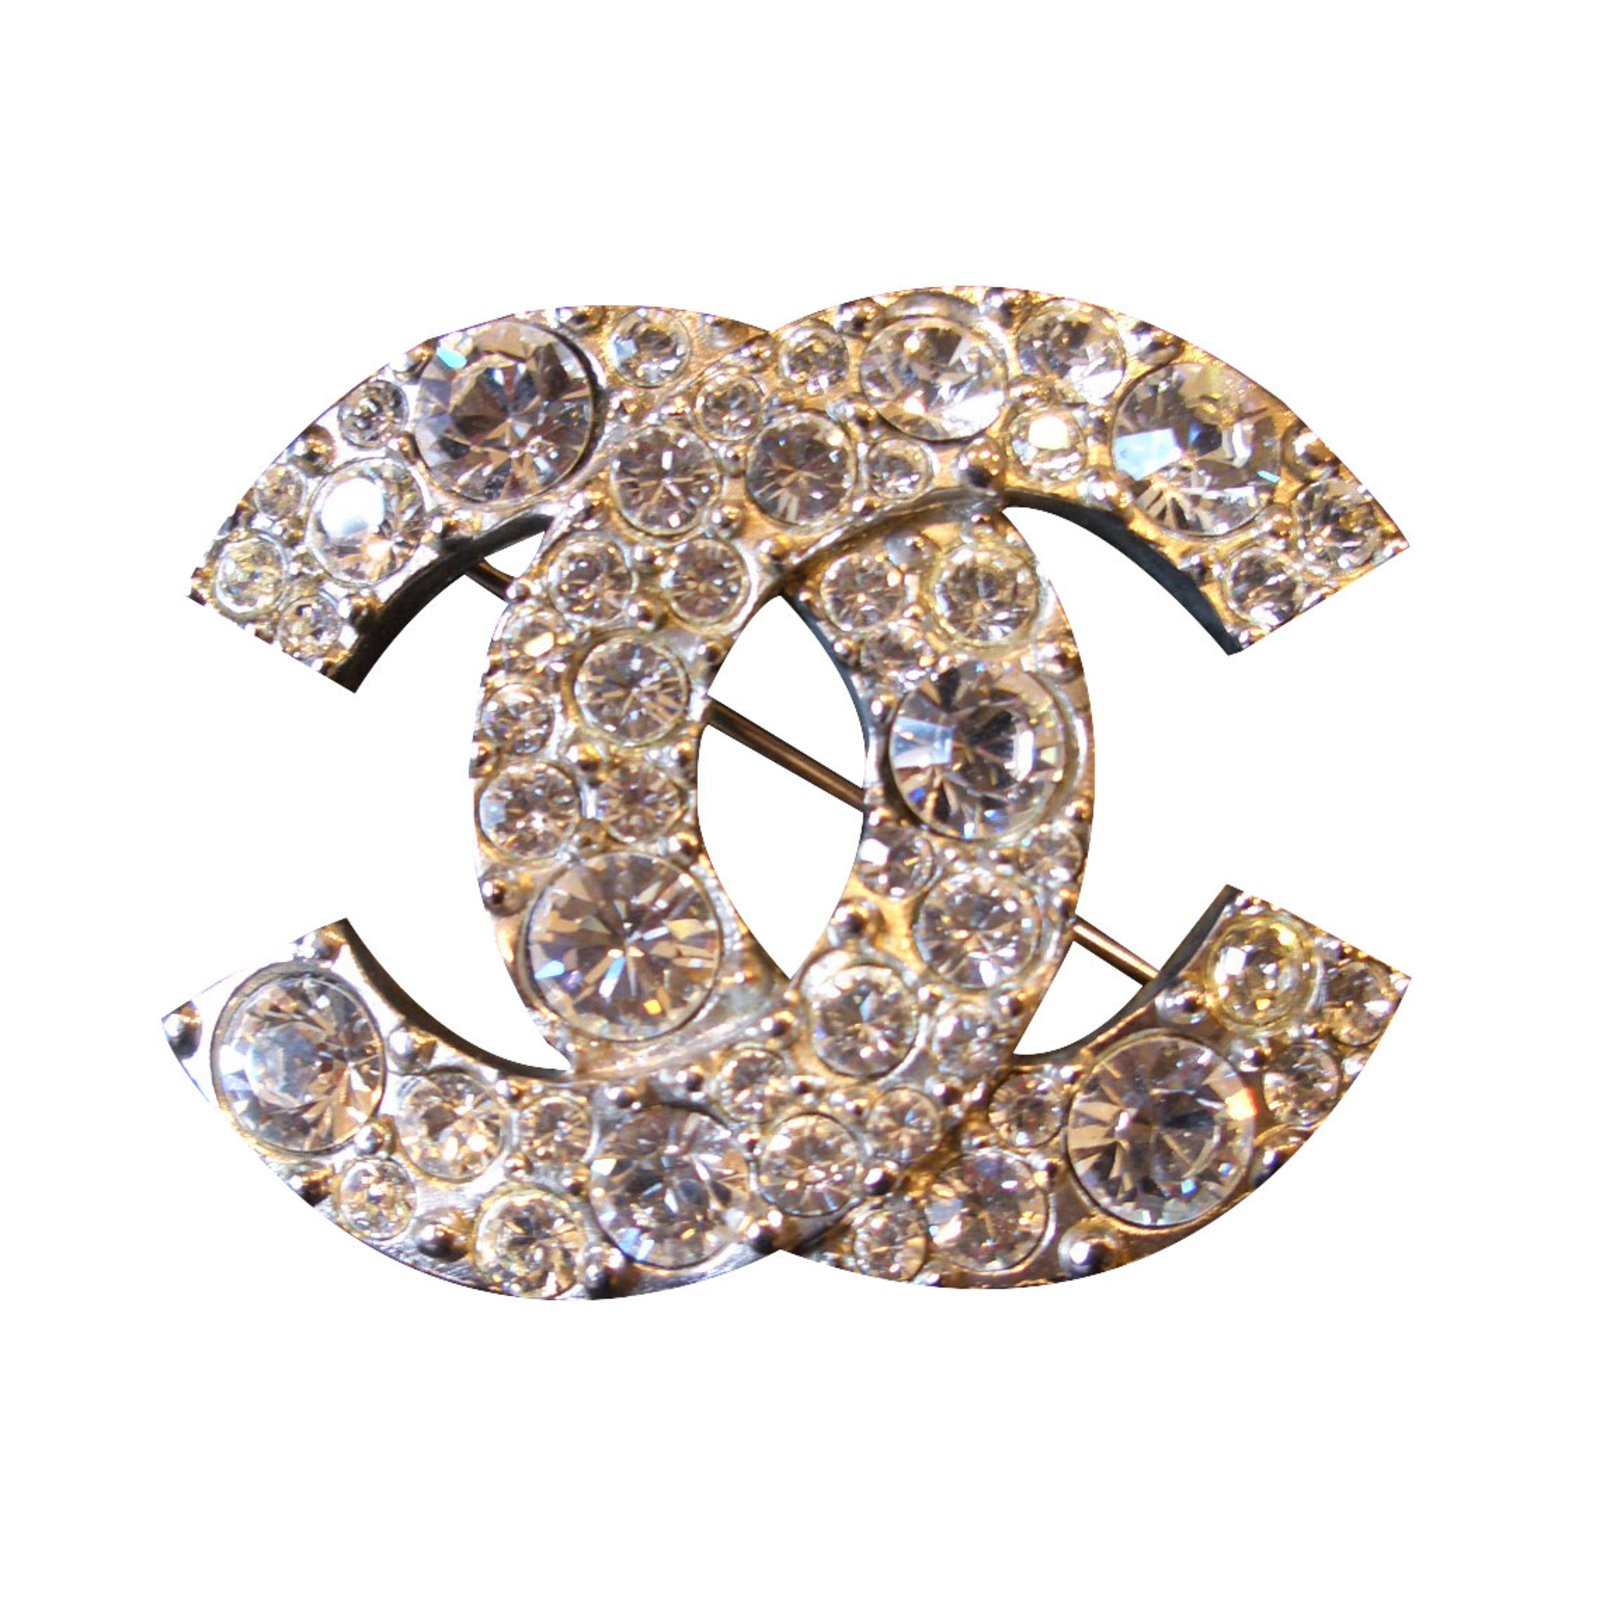 brooches reborn soles chanel brooch red channel